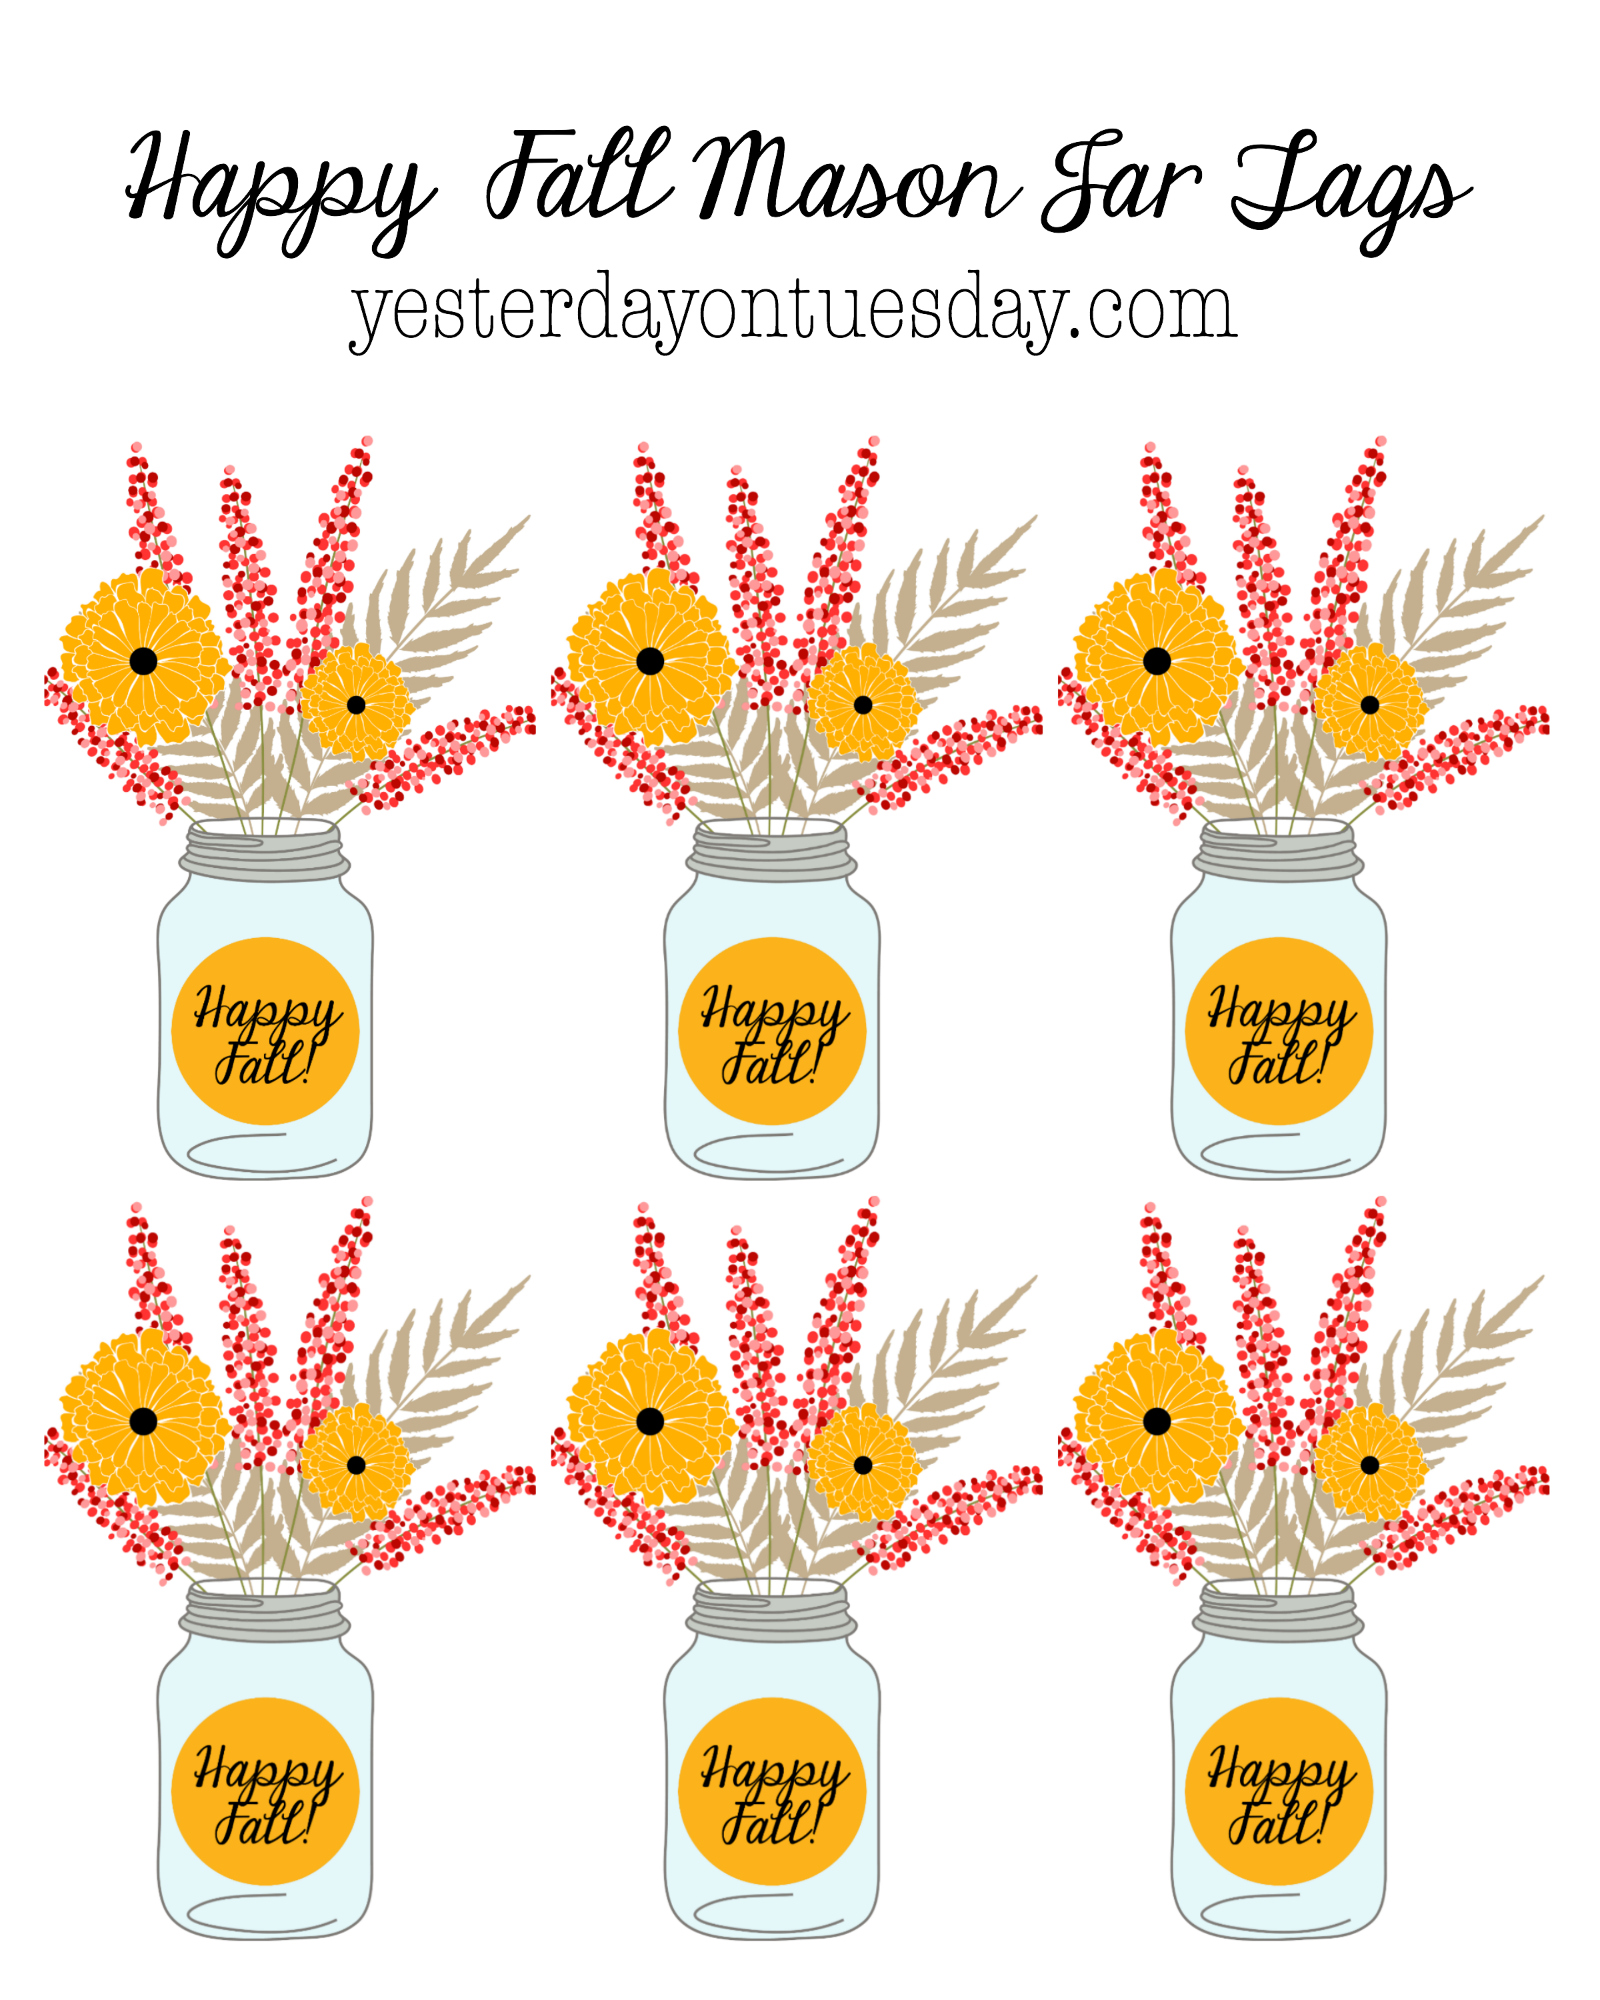 Particular Happy Fall Printable Mason Jar Gift Giving Happy Fall Mason Jar Gift Tags Yesterday On Tuesday Happy Fall Day Images Happy Friday Fall Images photos Happy Fall Images